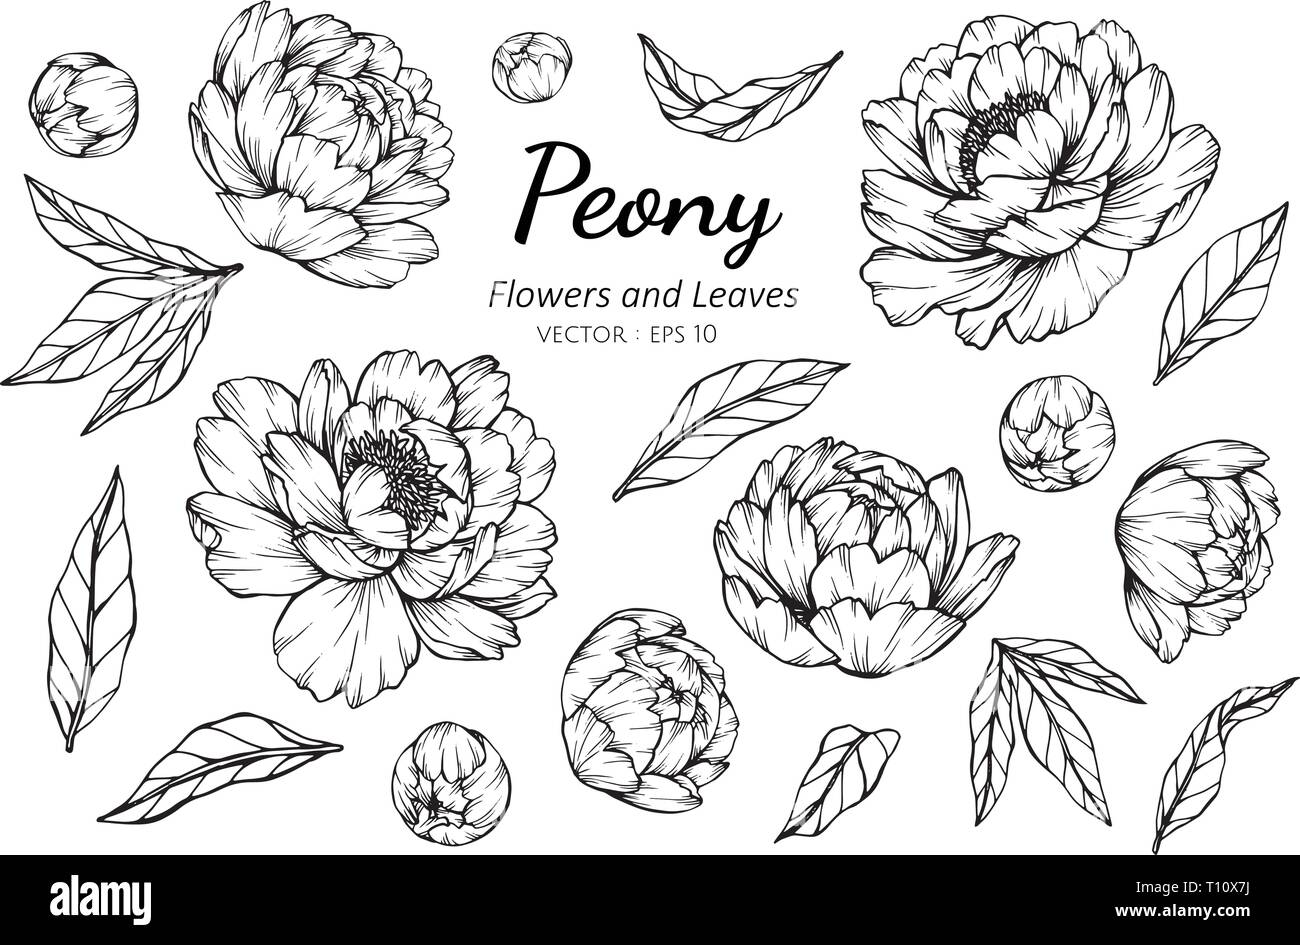 Collection Set Of Peony Flower And Leaves Drawing Illustration For Pattern Logo Template Banner Posters Invitation And Greeting Card Design Stock Vector Image Art Alamy